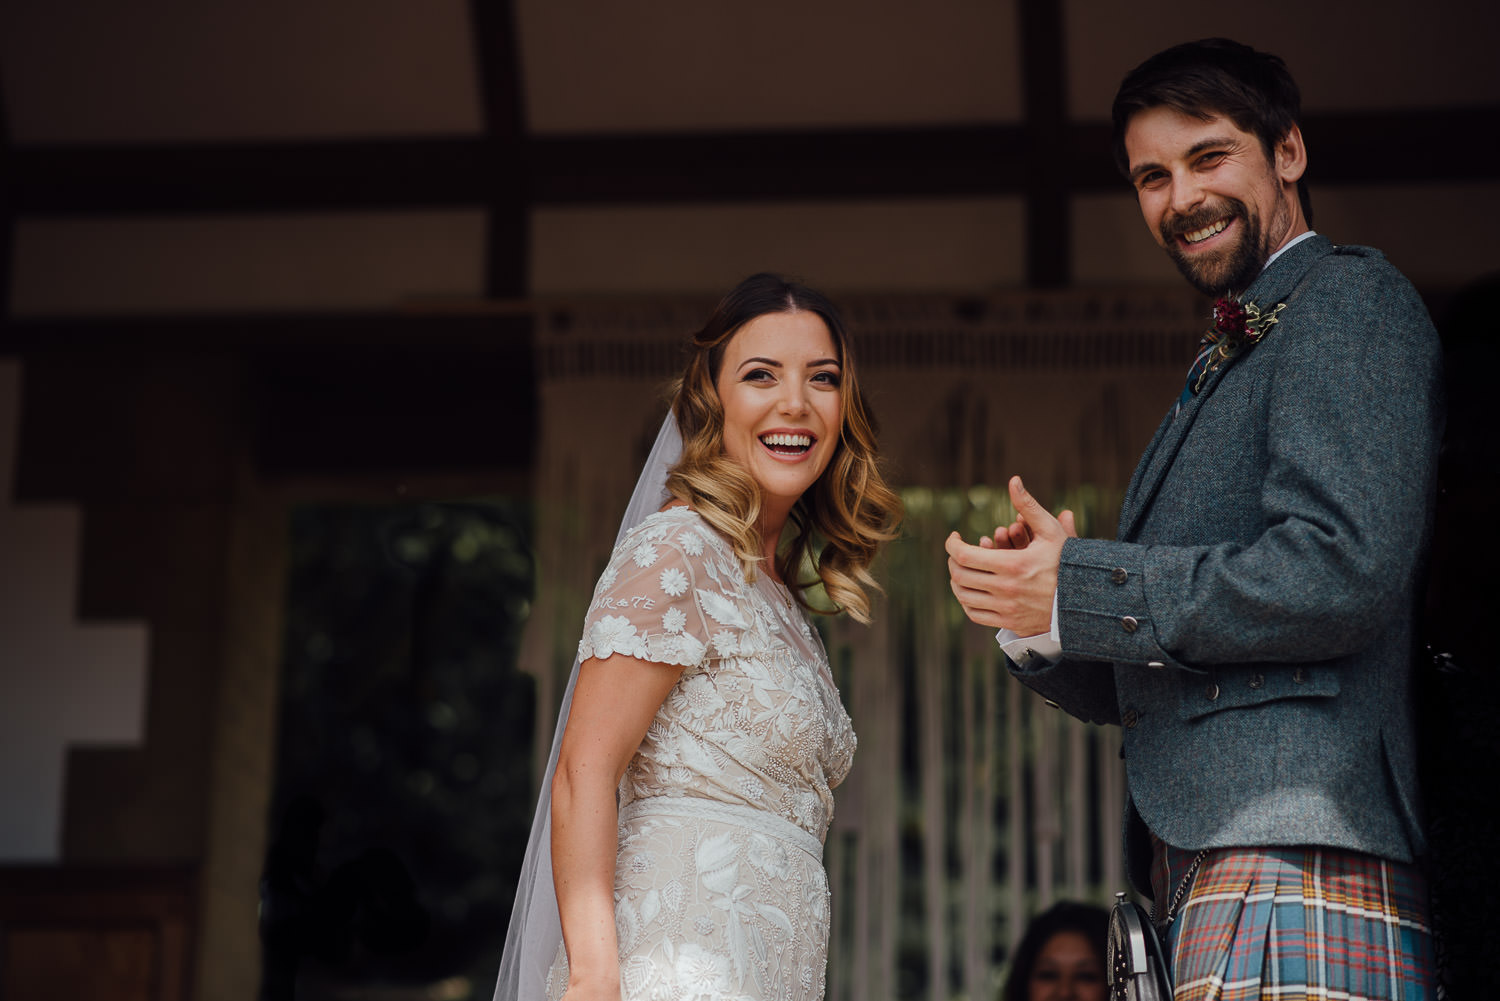 Cool outdoor wedding in Barley Wood House Bristol Wedding by bristol wedding photographer the shannons photography